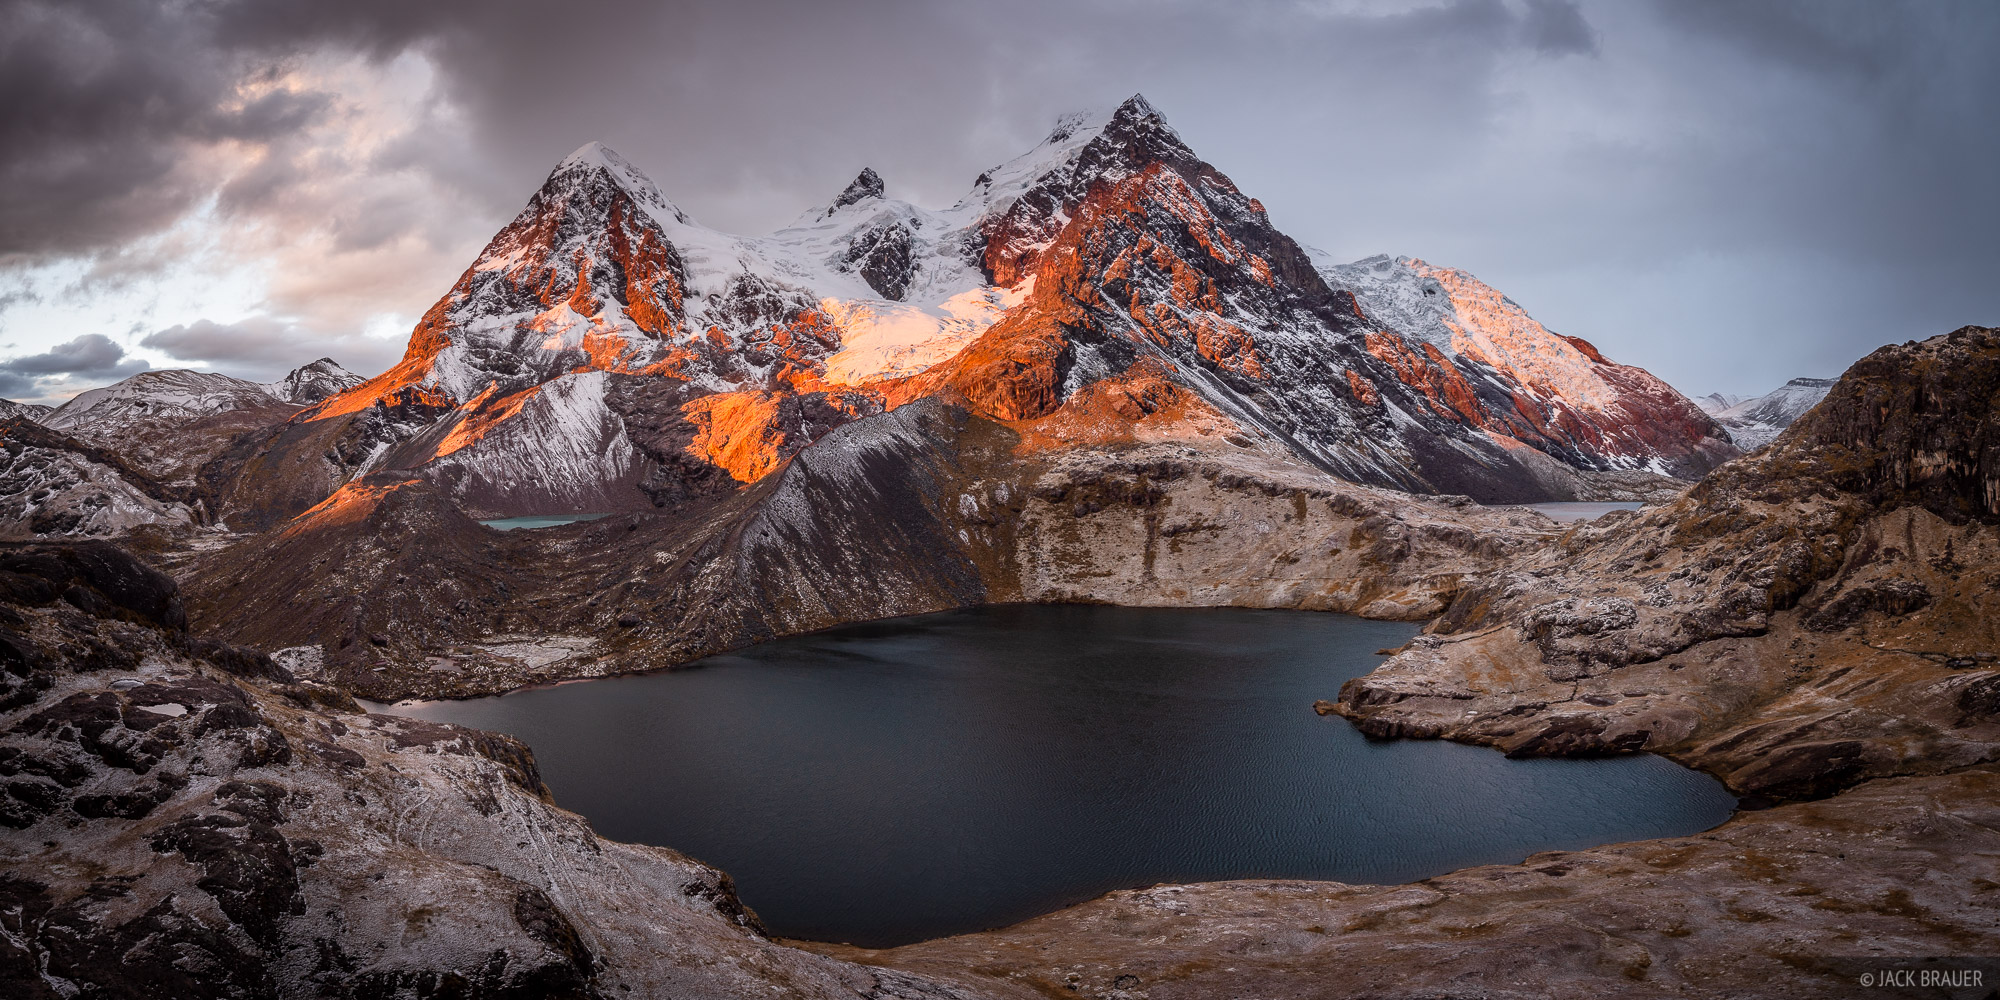 Ausangate, Cordillera Vilcanota, Lago Uchuy Pucacocha, Peru, South America, sunset, panorama, photo